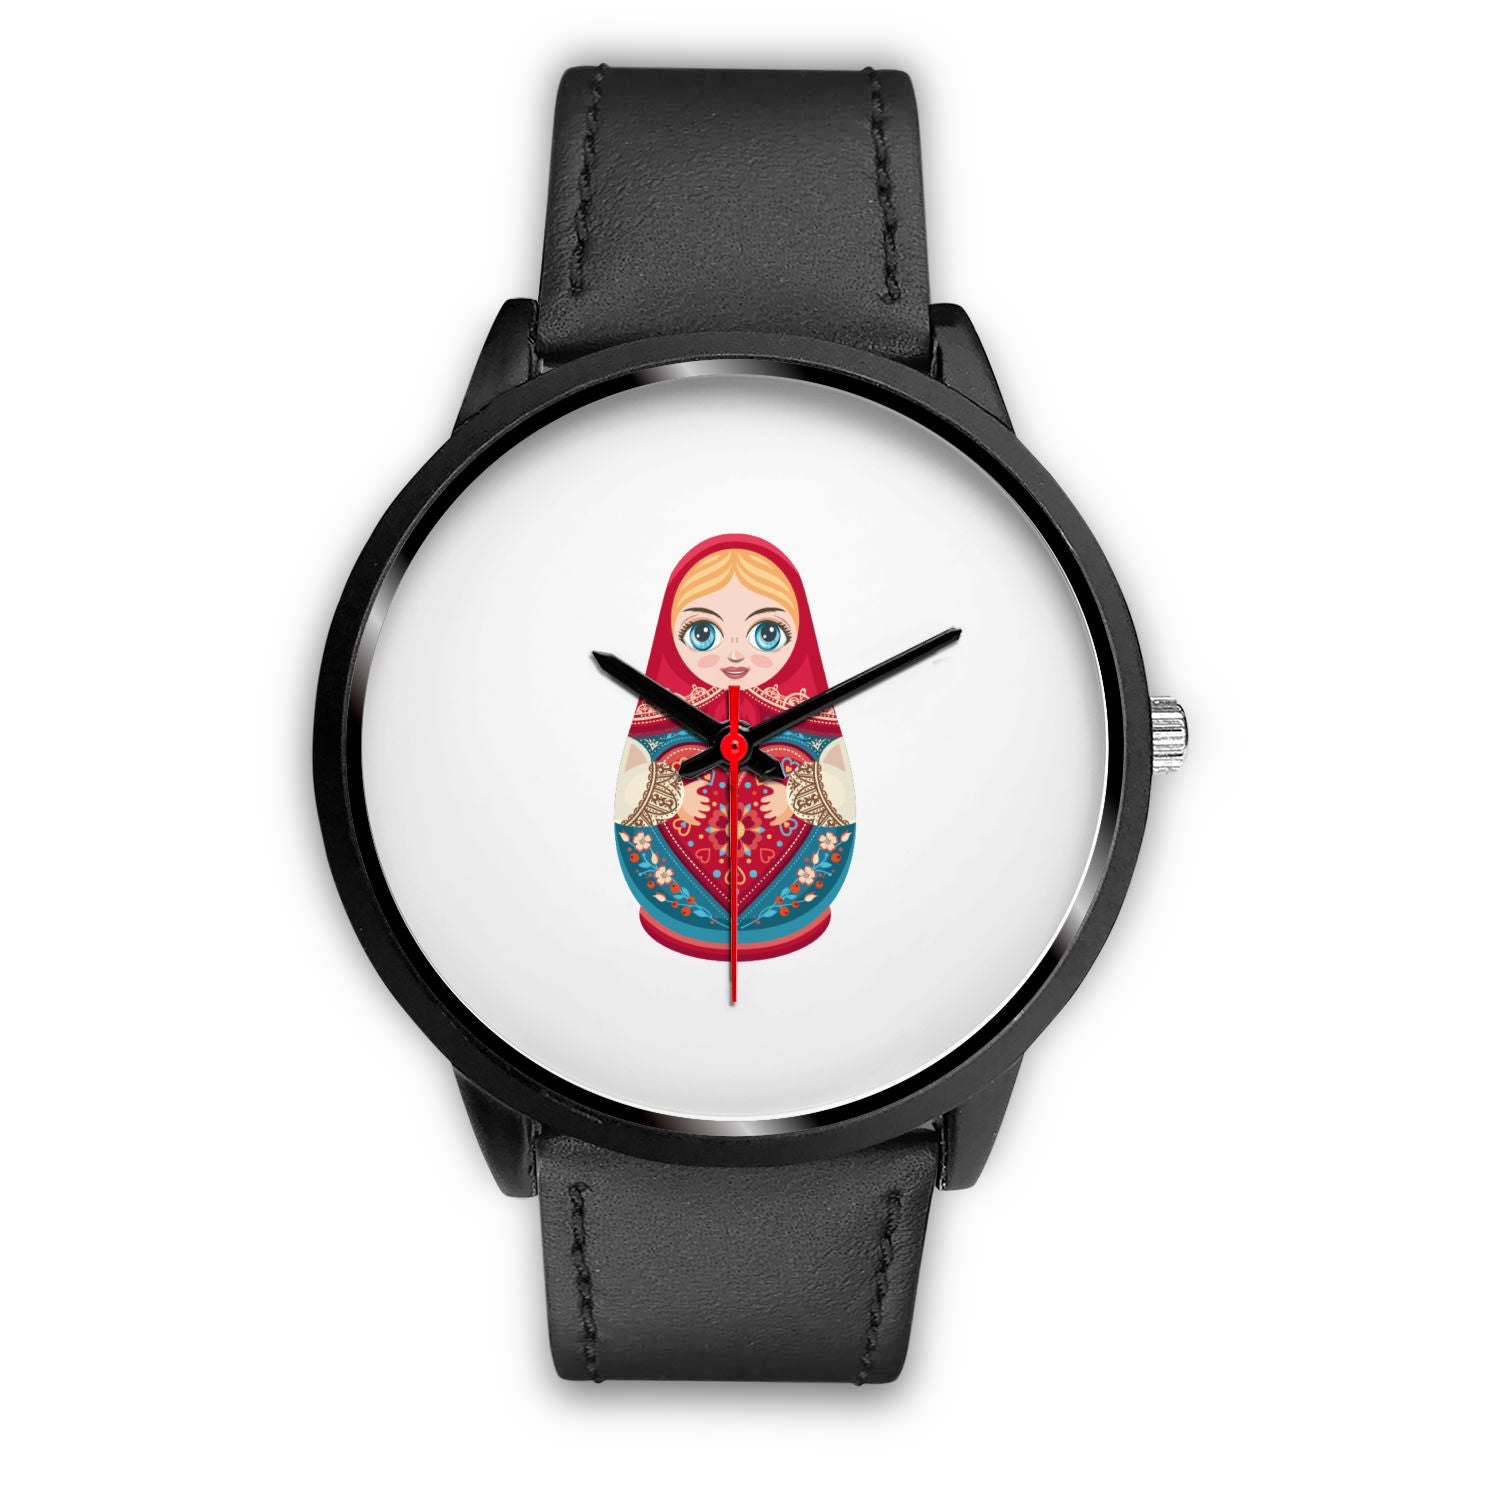 Matreshka watch